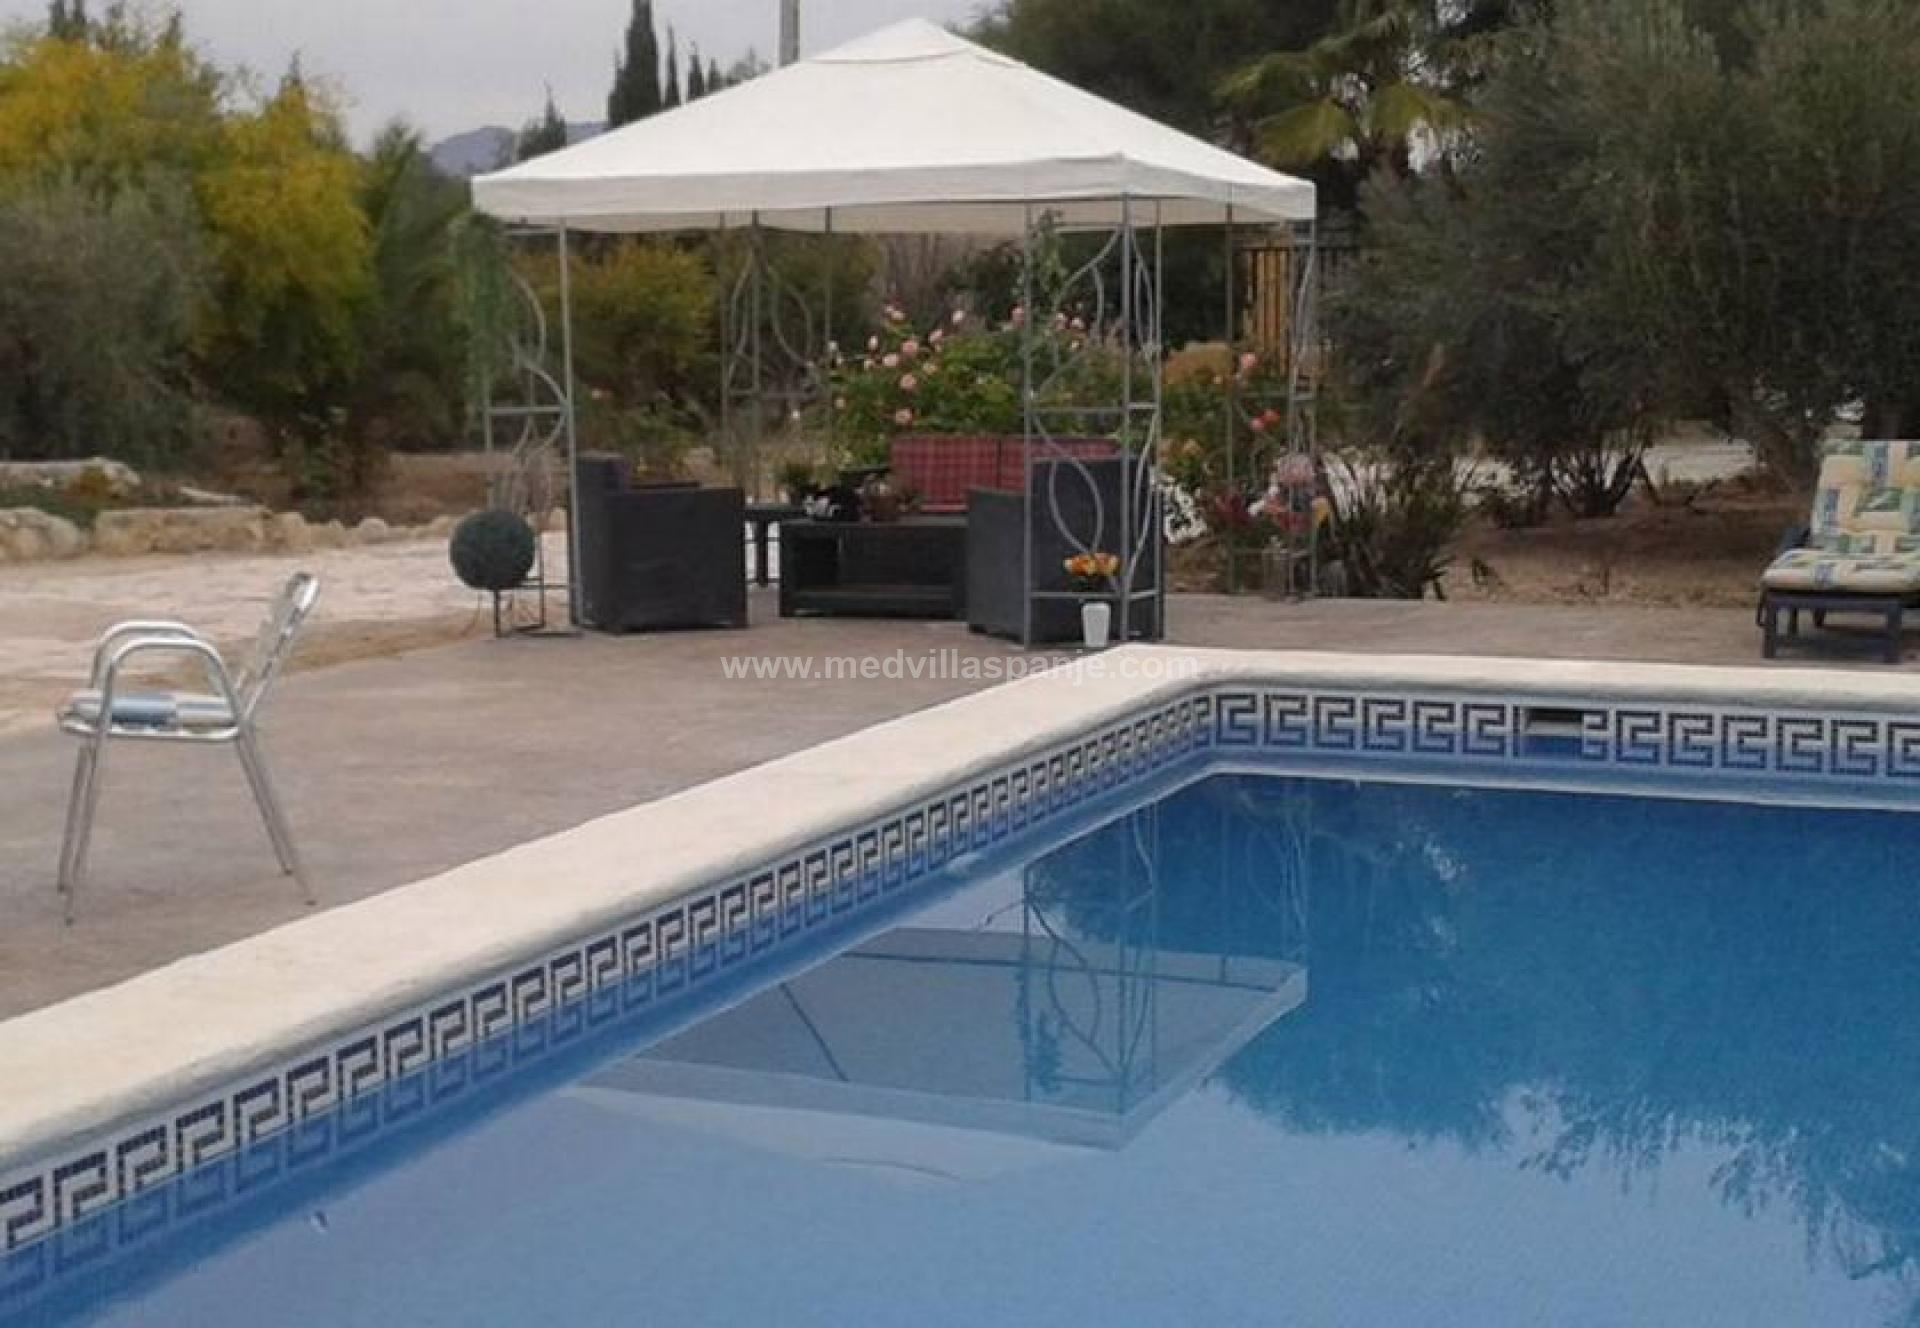 Camp site with b and b potential for sale Aspe, Alicante in Medvilla Spanje